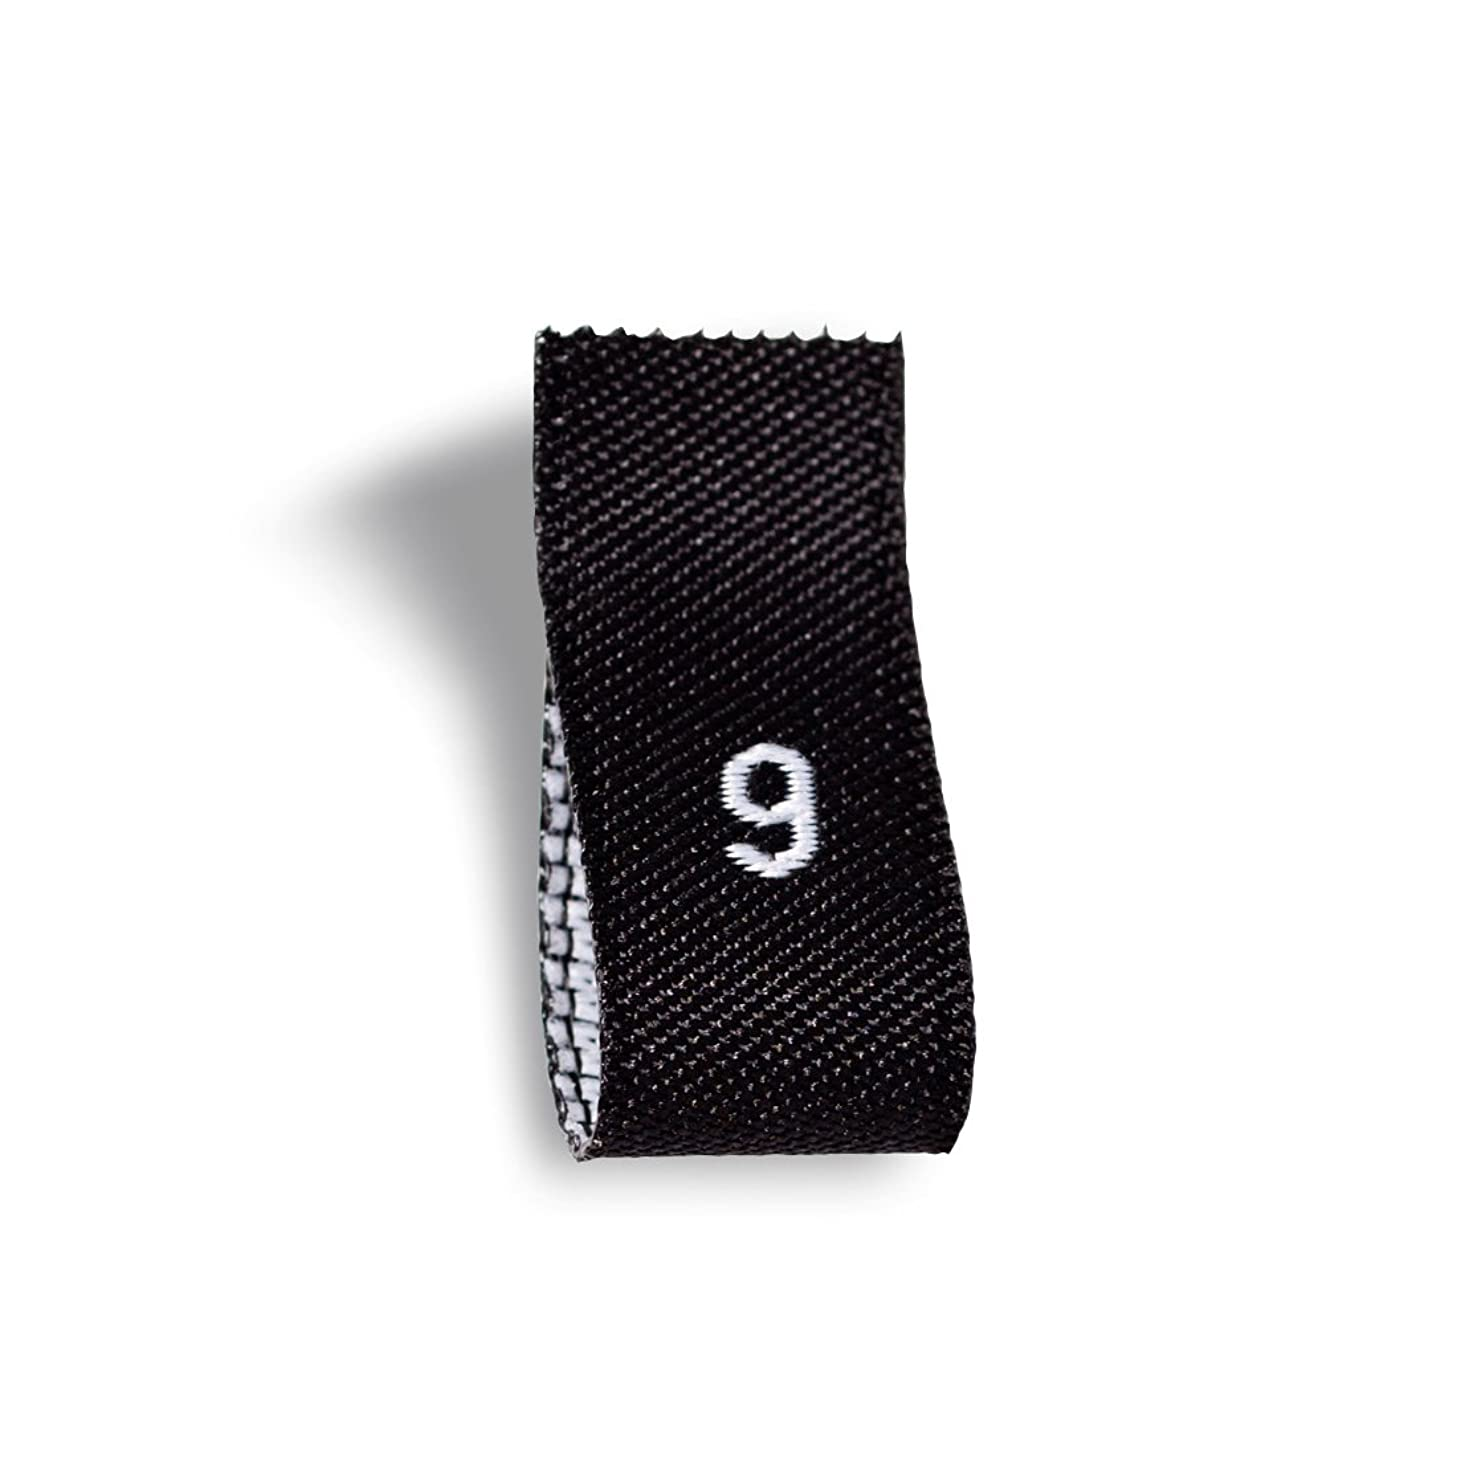 Wunderlabel Adult Size Label Woven Crafting Craft Art Fashion Ribbon Ribbons Tag for Clothing Sewing Sew on Clothes Garment Fabric Material Embroidered Label Labels Tags, White on Black, S9, 50 Labels